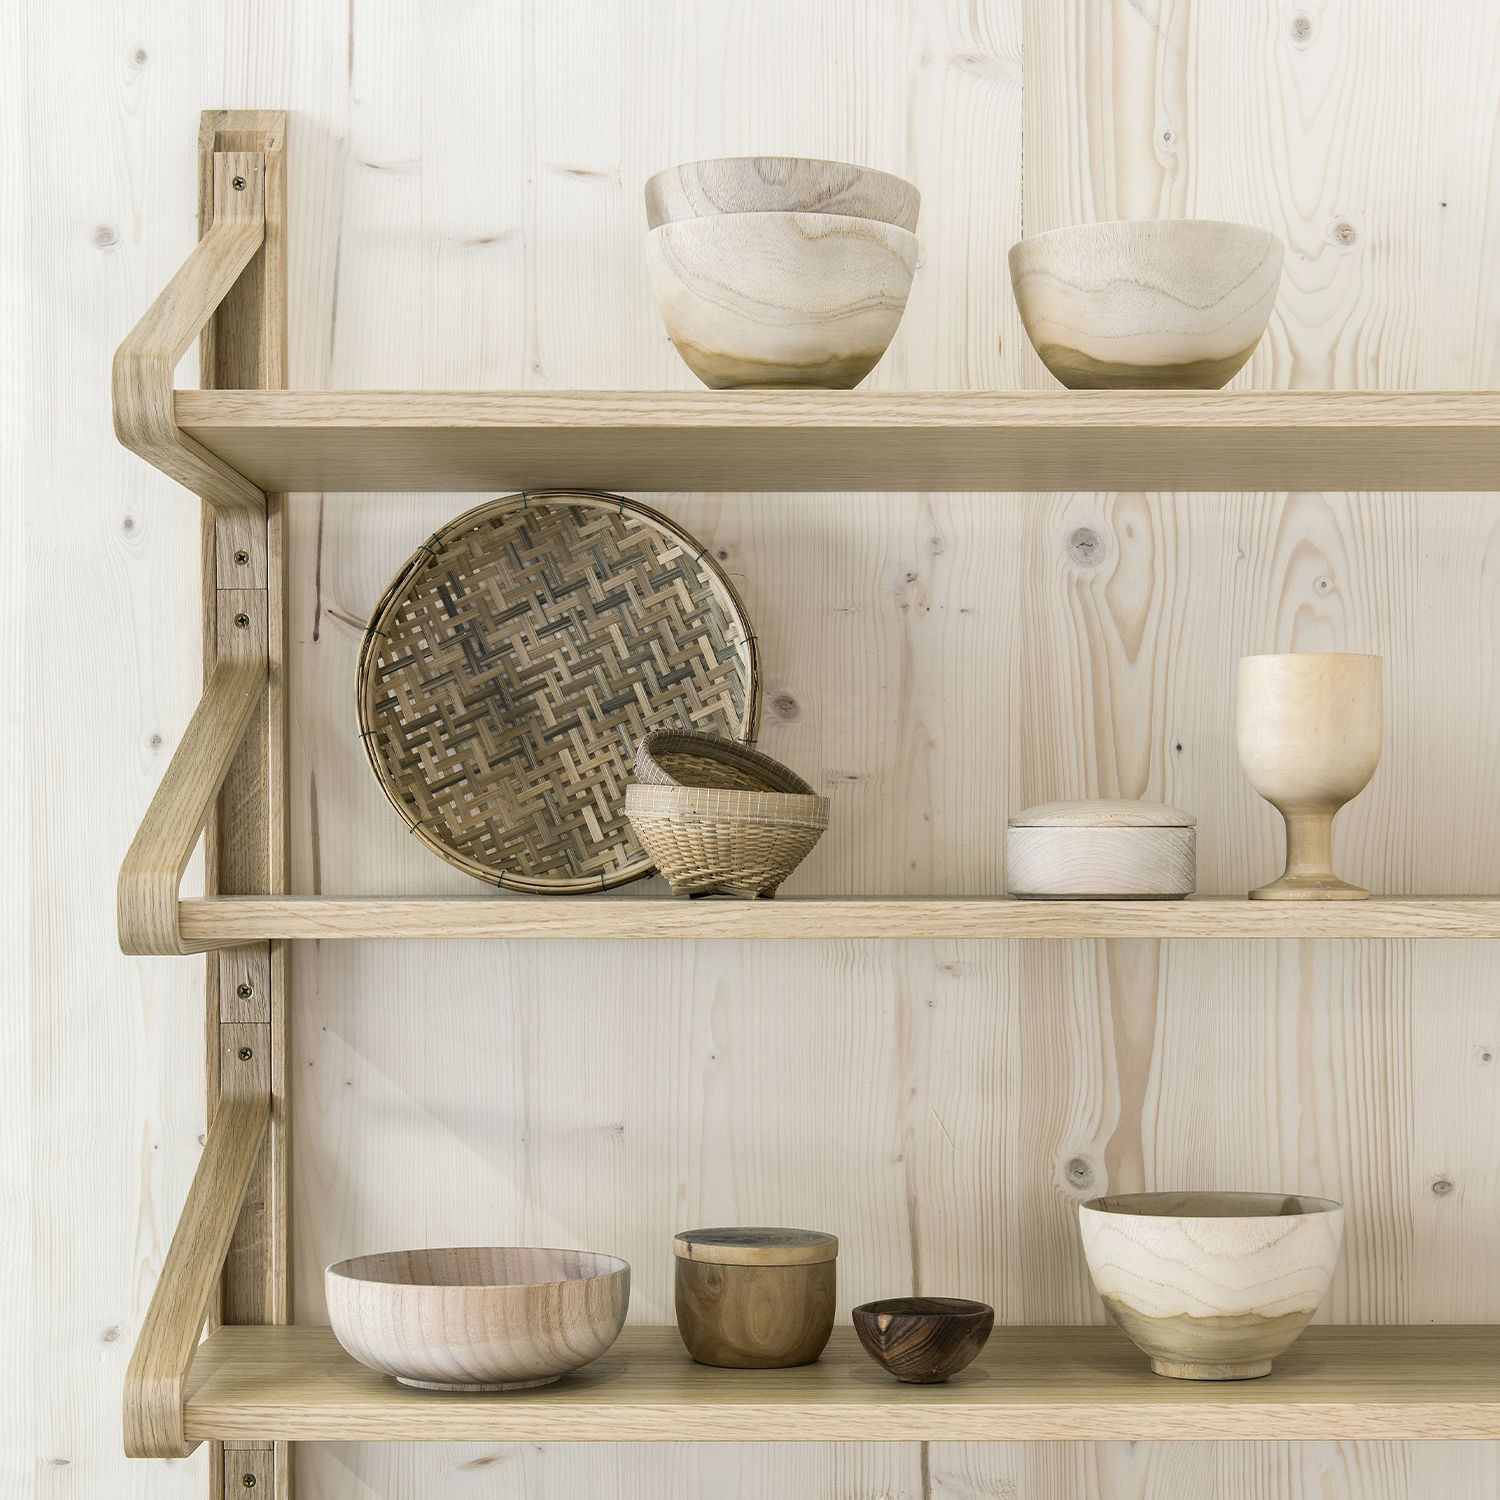 Wooden shelf system for favorite things